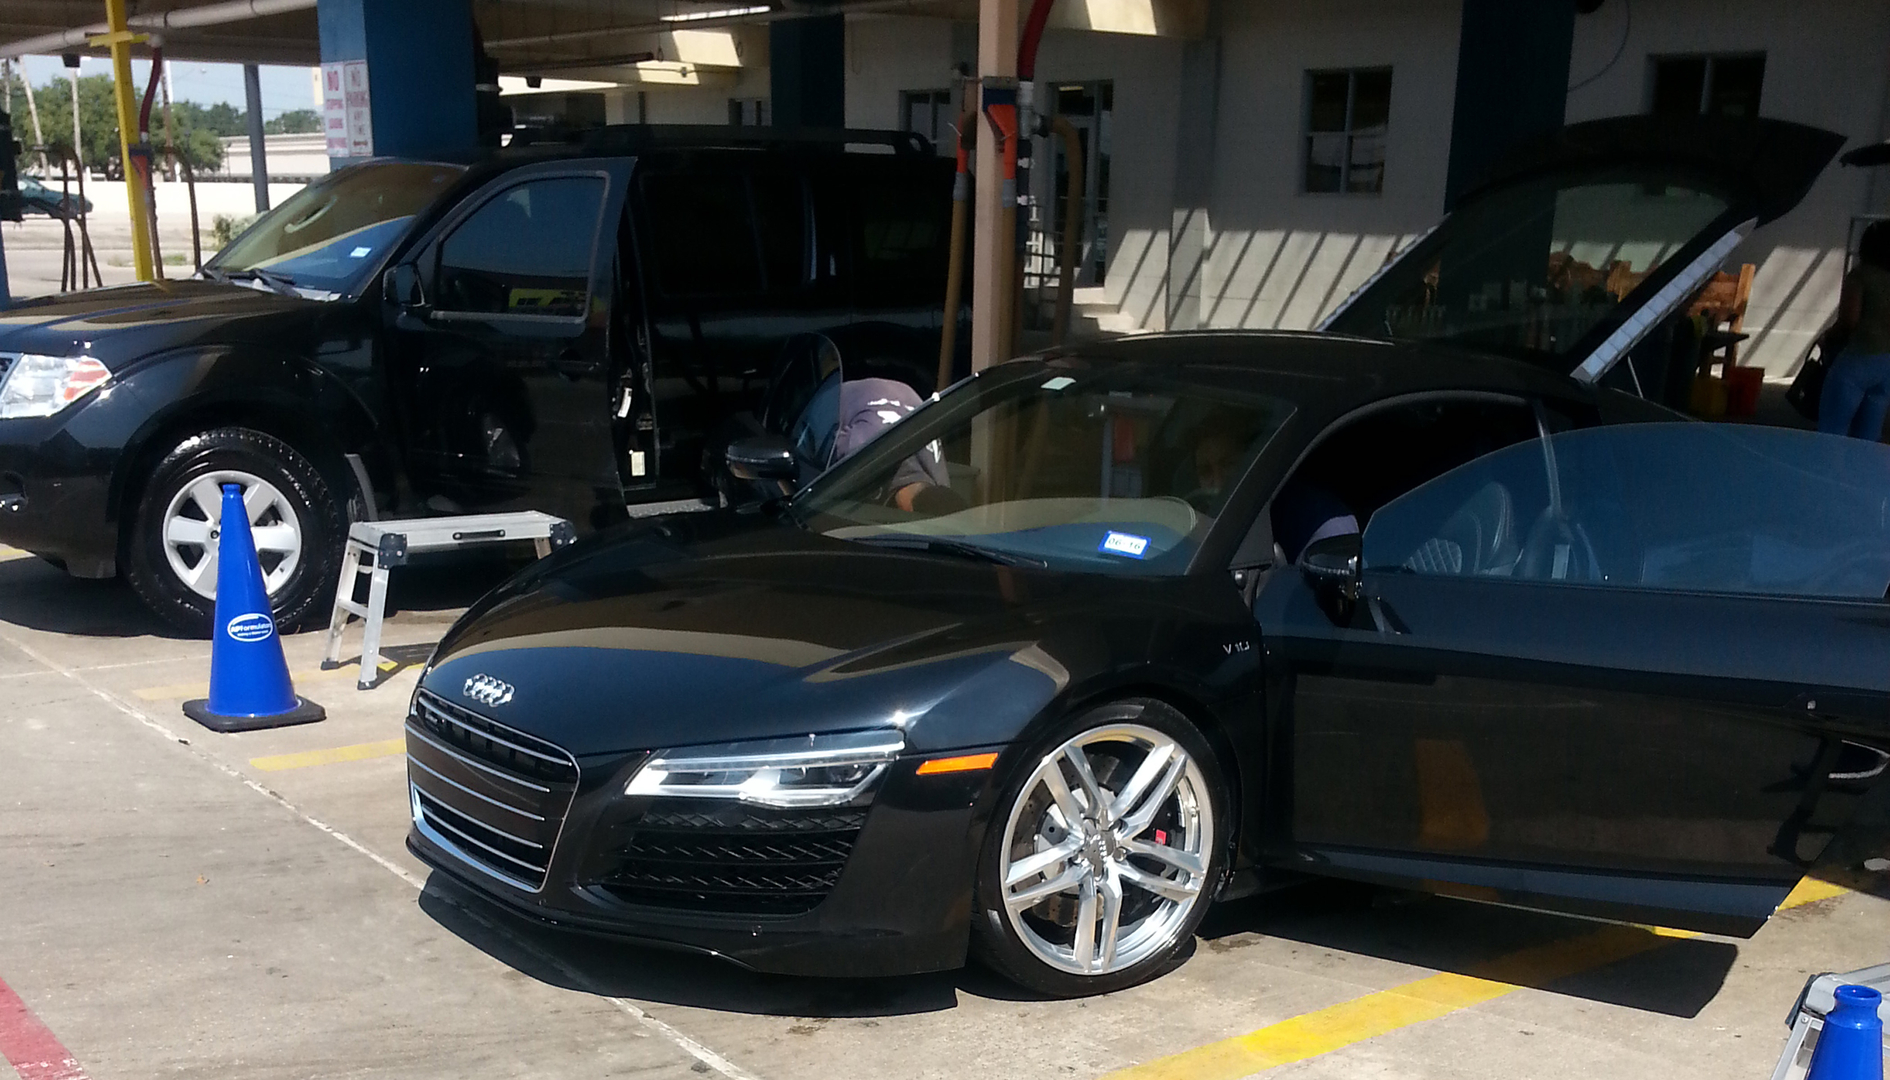 Texas star wash detail car detail free vacuums car detailing a weekly wash with the express wash club would get you 56 worth of washes for 2495 per month a full service club would get you 95 worth of washes for solutioingenieria Gallery